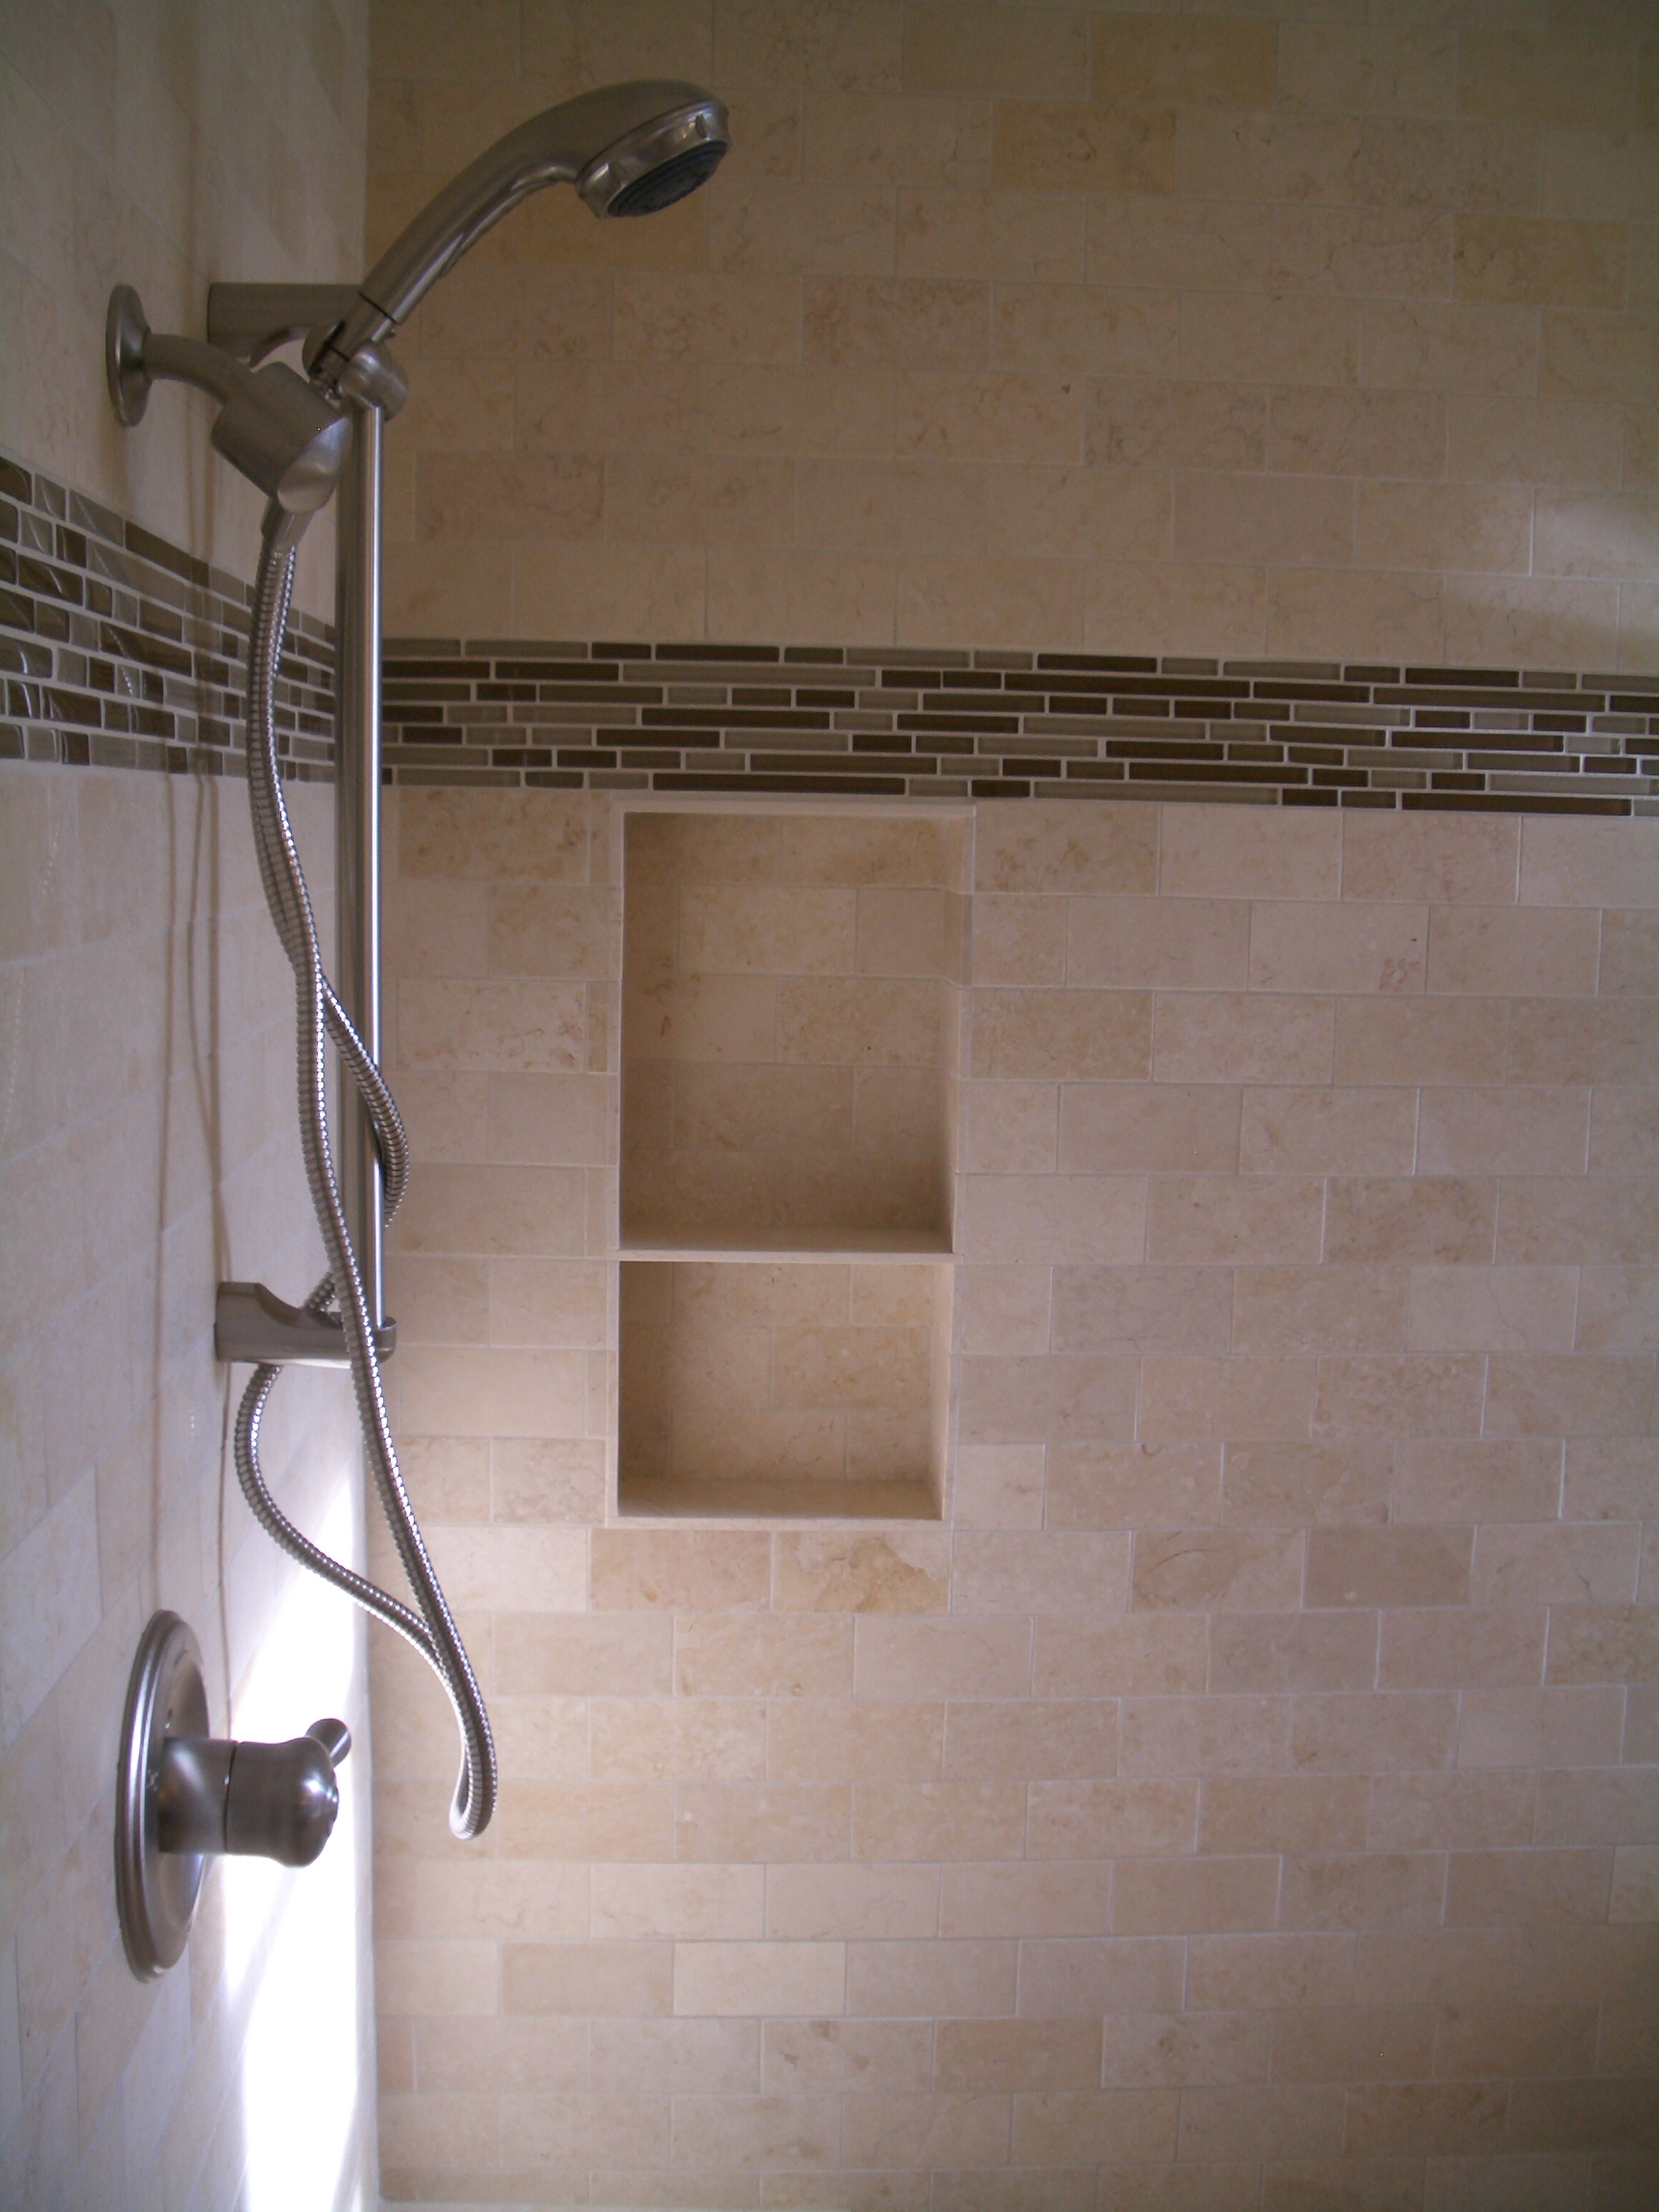 glass tiles as accents in tile